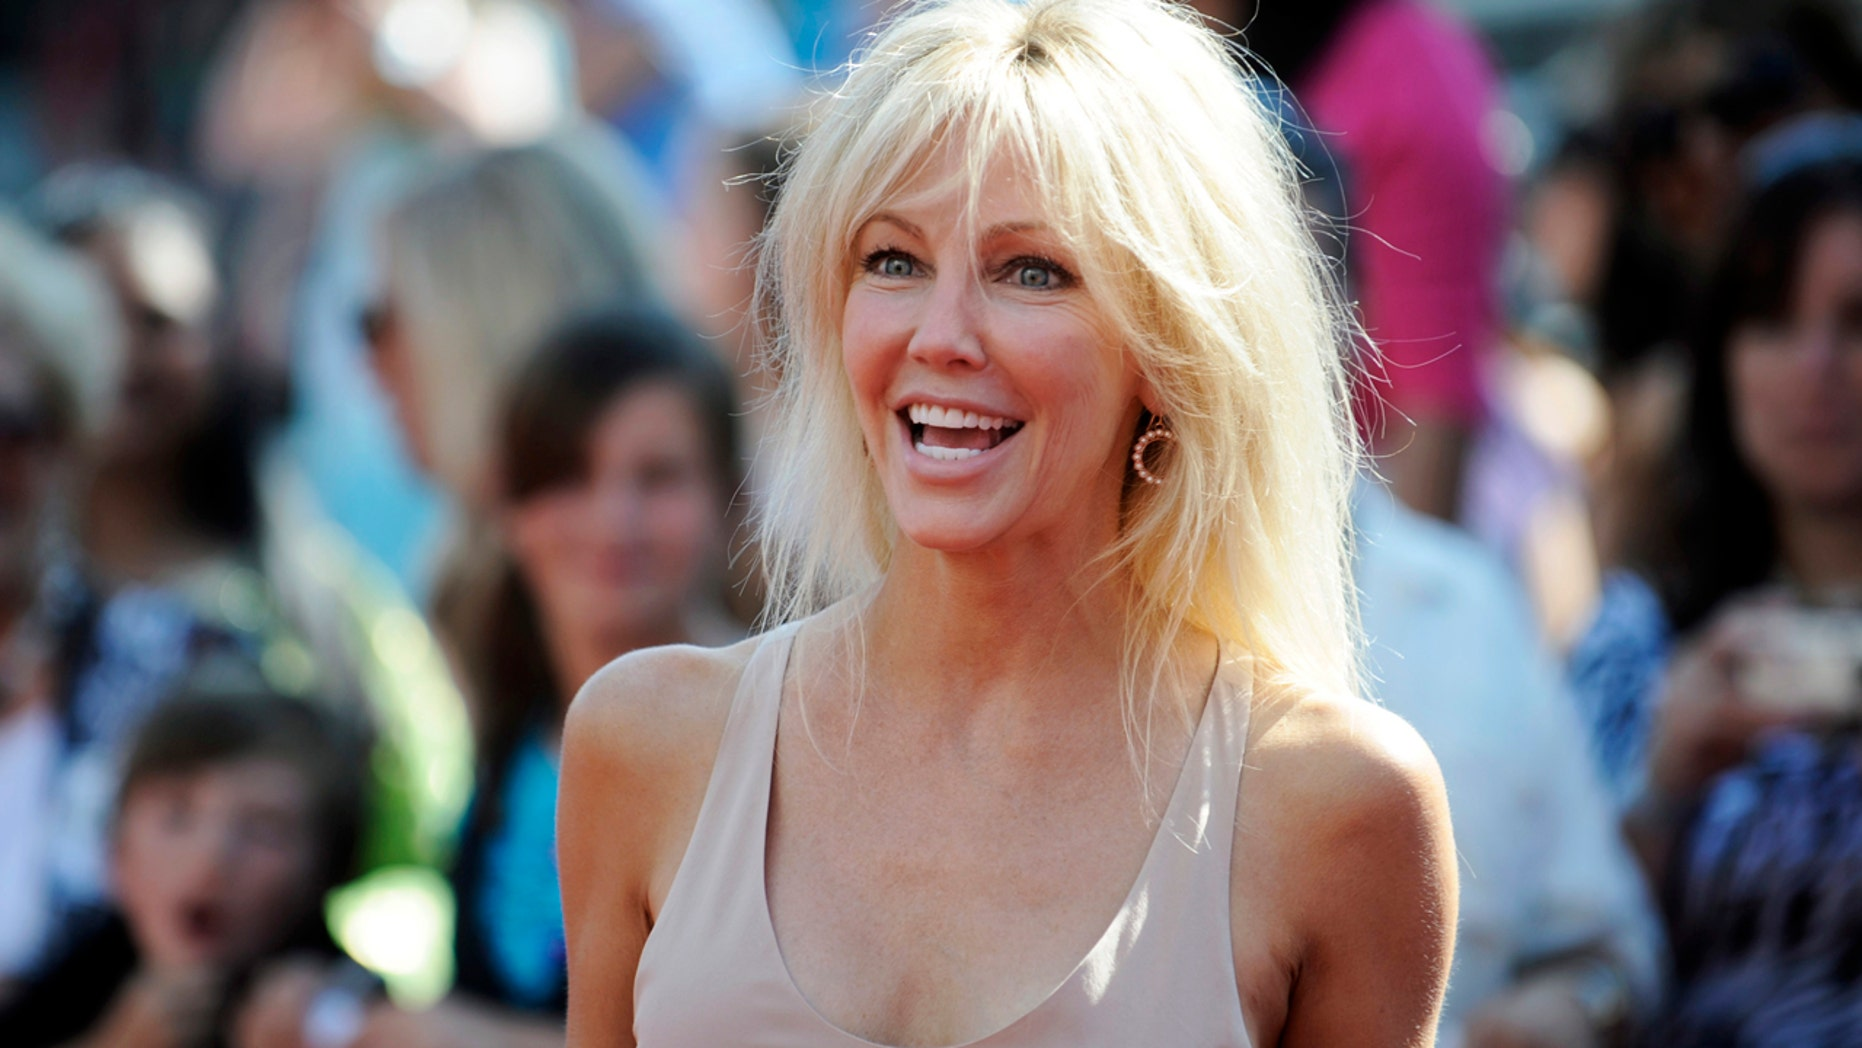 """Actress Heather Locklear arrives for the finale of Season 8 of """"American Idol"""" in Los Angeles May 20, 2009.   REUTERS/Phil McCarten  (UNITED STATES ENTERTAINMENT) - RTXKENK"""